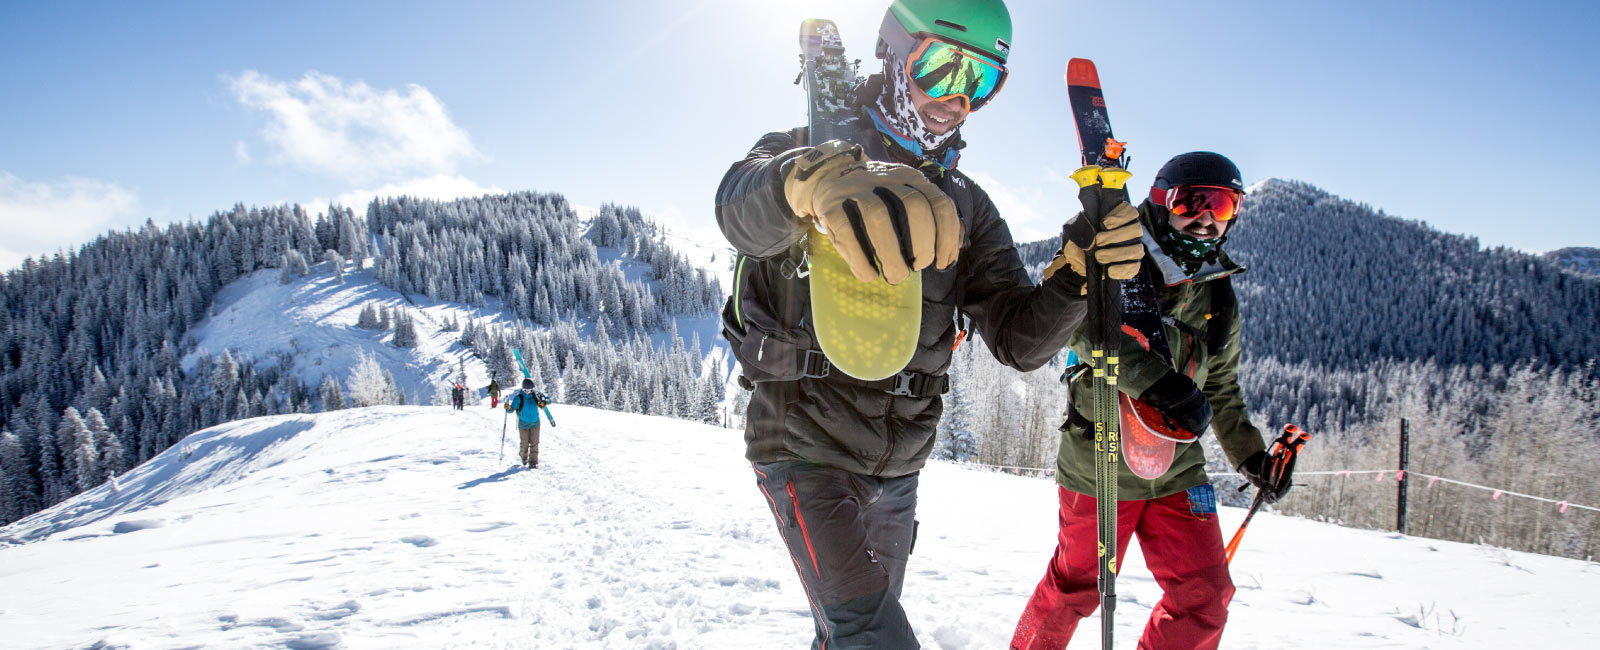 Connecting Utah's Central Resorts On Skis